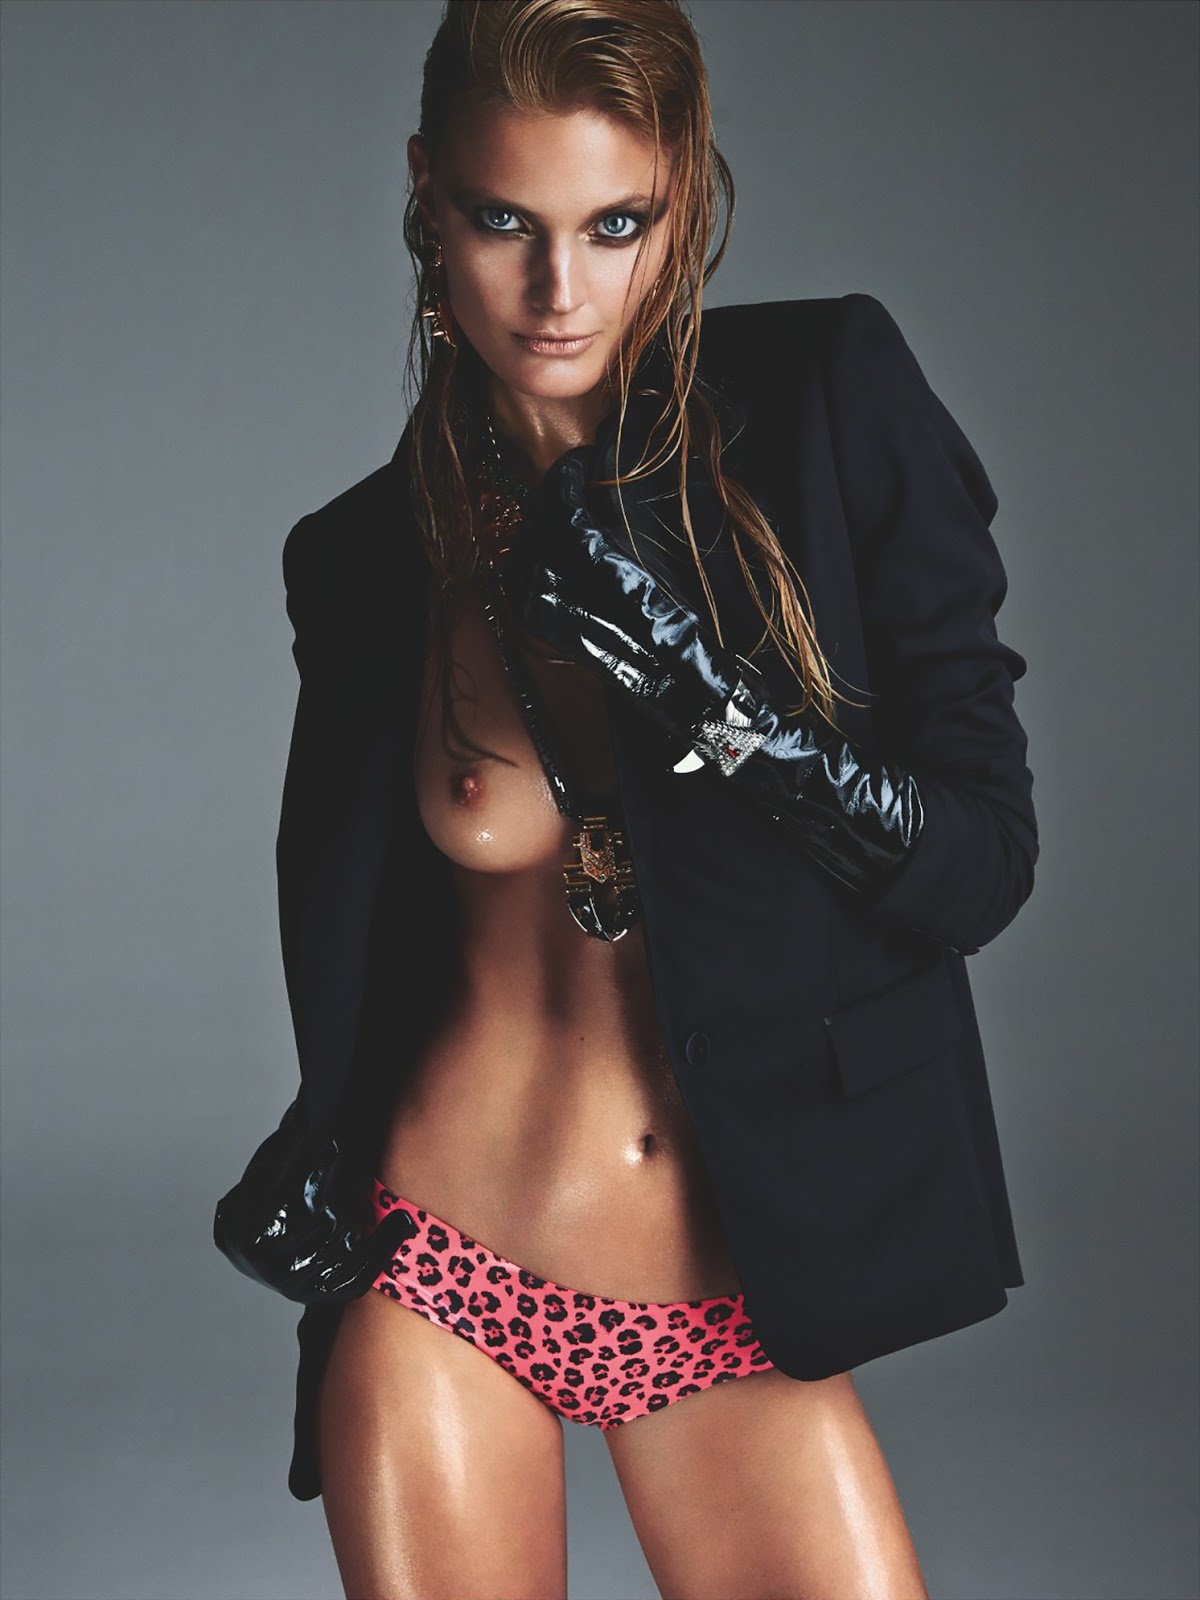 constance-jablonski-catwoman-see-through-nipples-tits-1.jpg